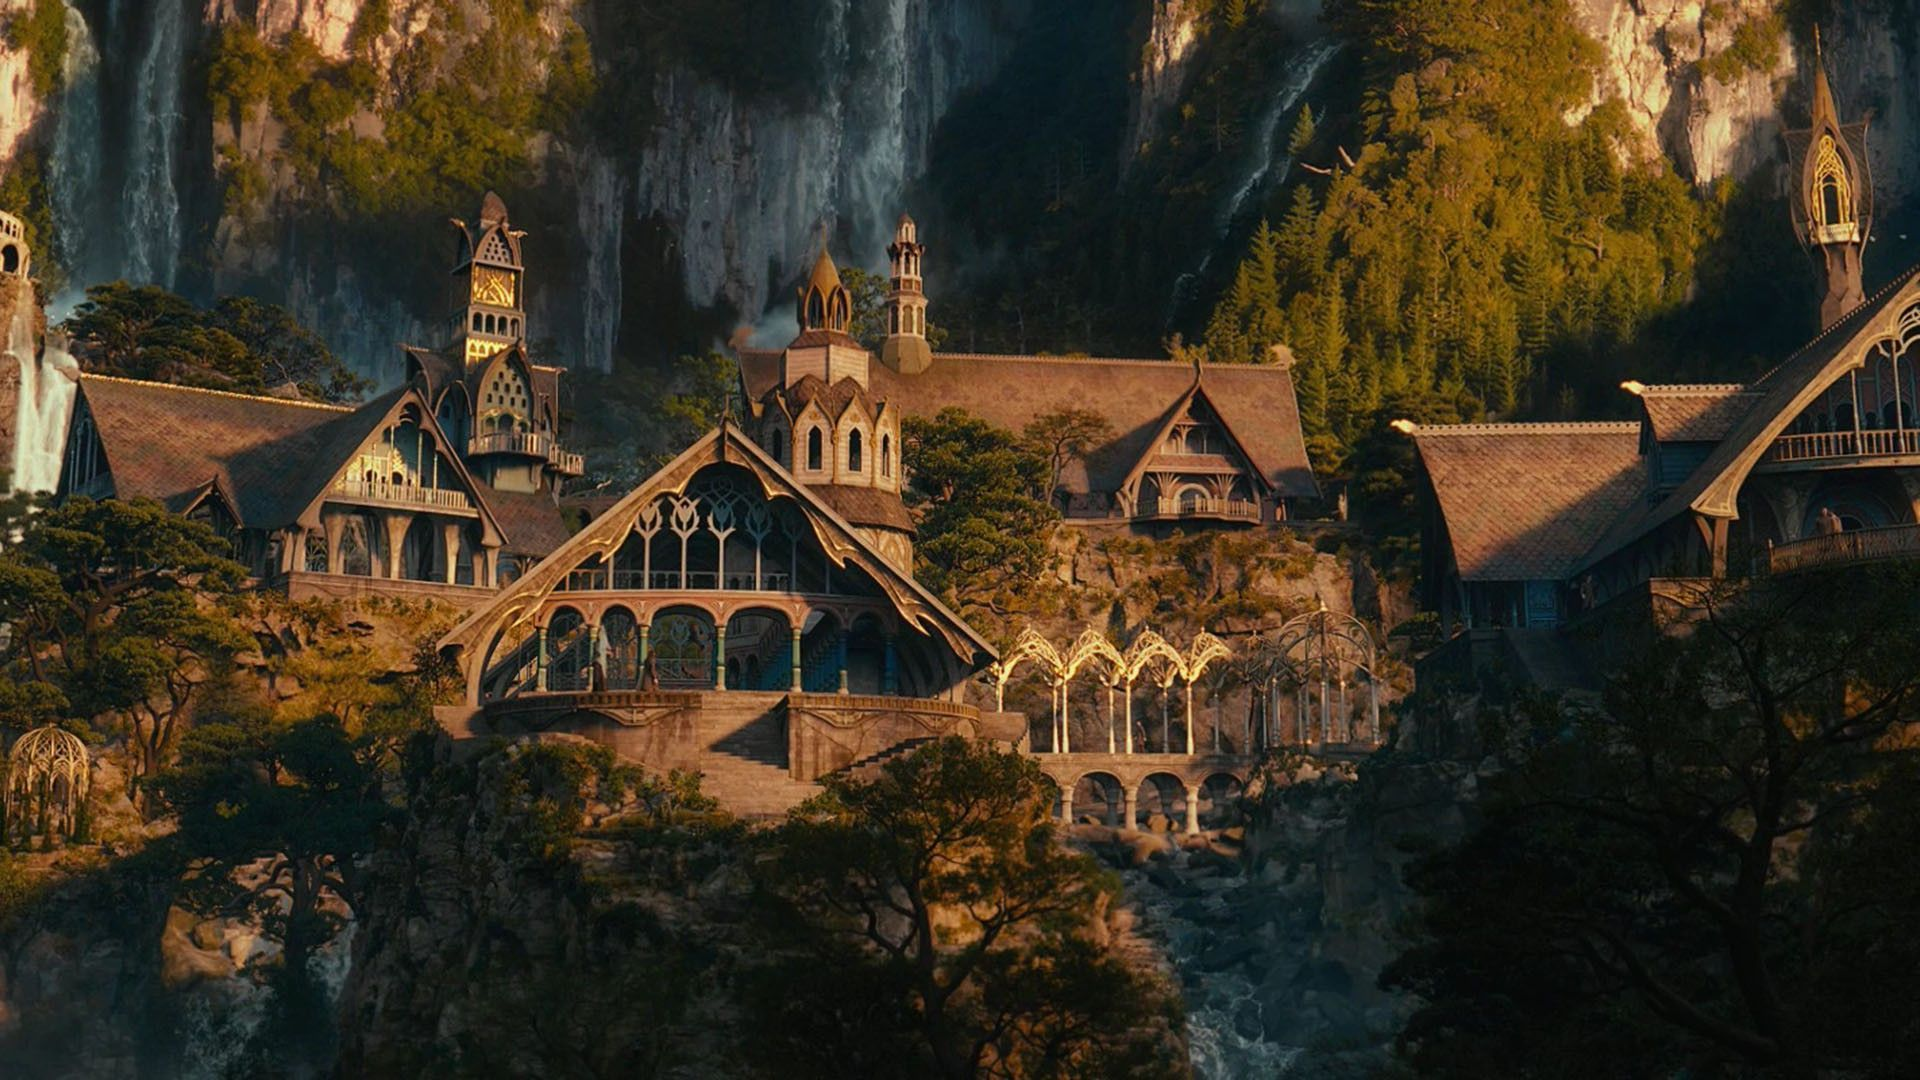 Rivendell hd wallpapers geeking rivendell and other middle earth architecture pinterest - Hd wallpaper of home architecture ...